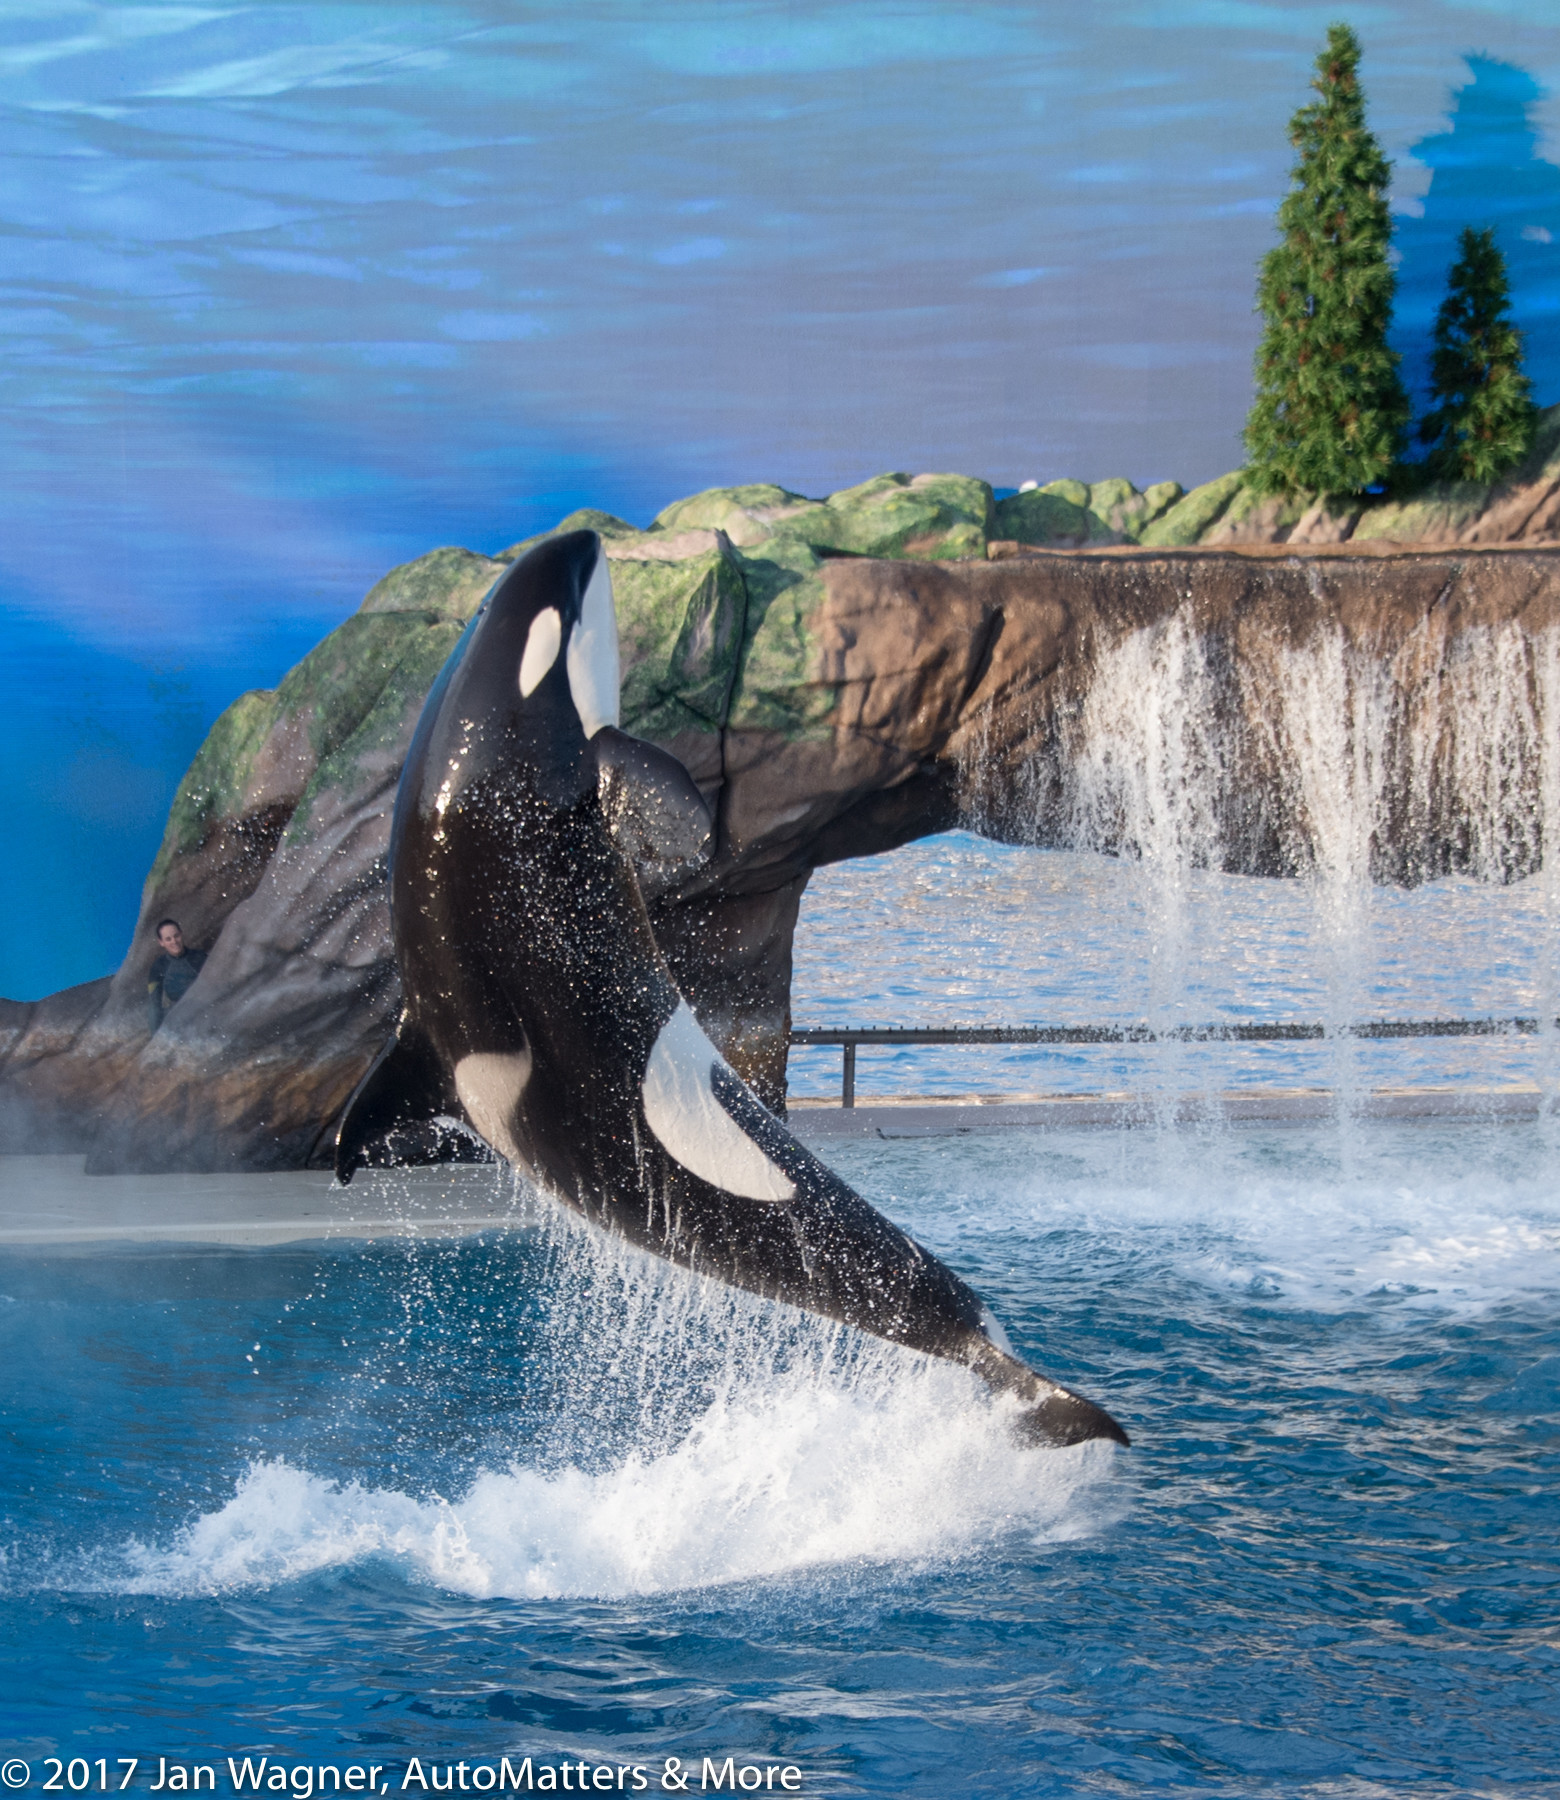 Killer whale breaching in the Orca Encounter